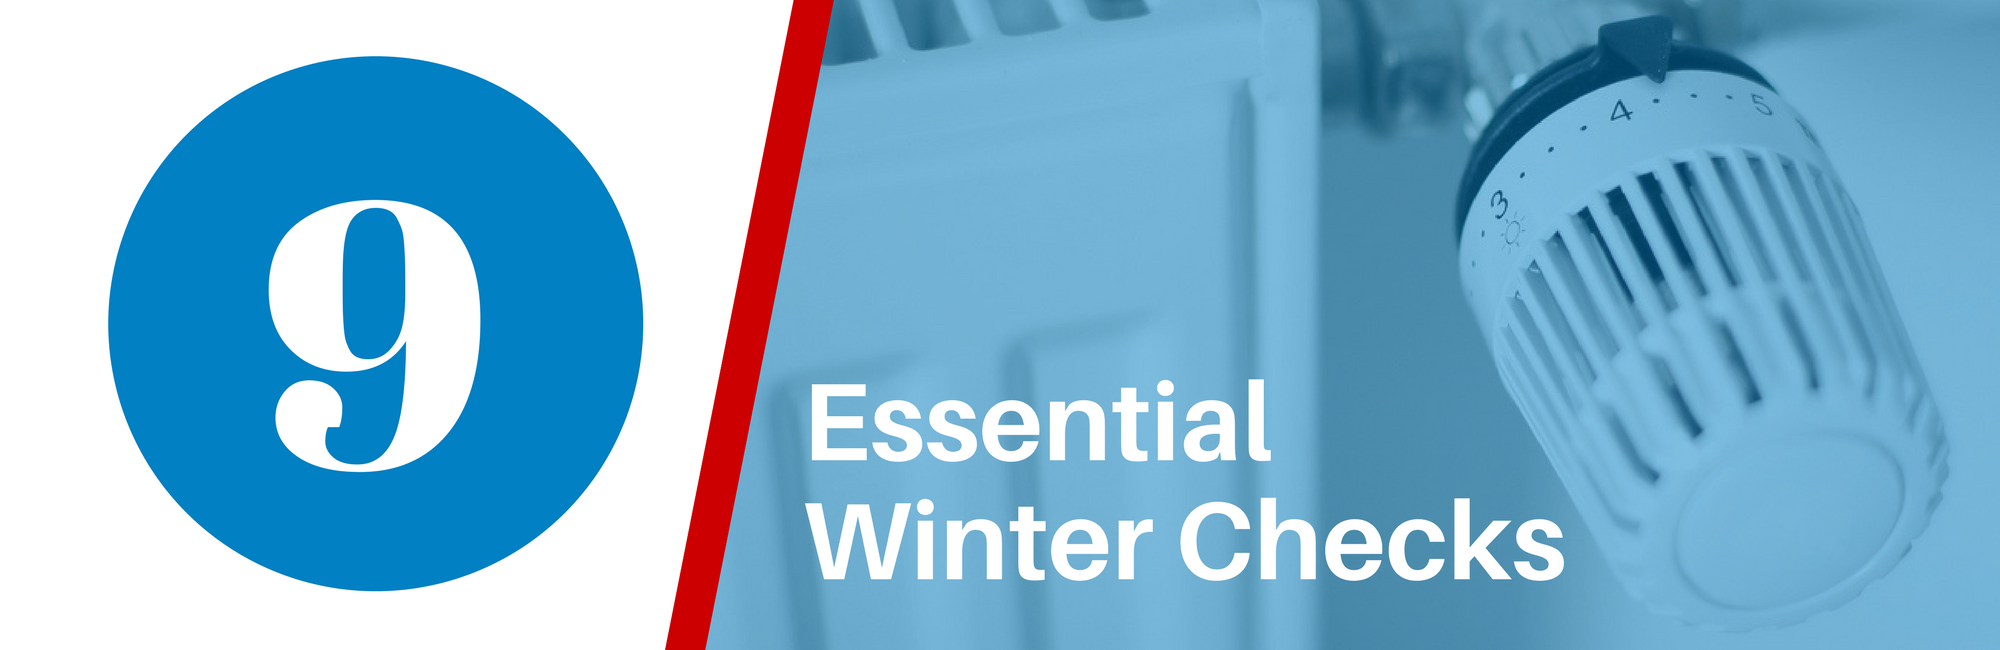 9 Essential Winter Checks 1